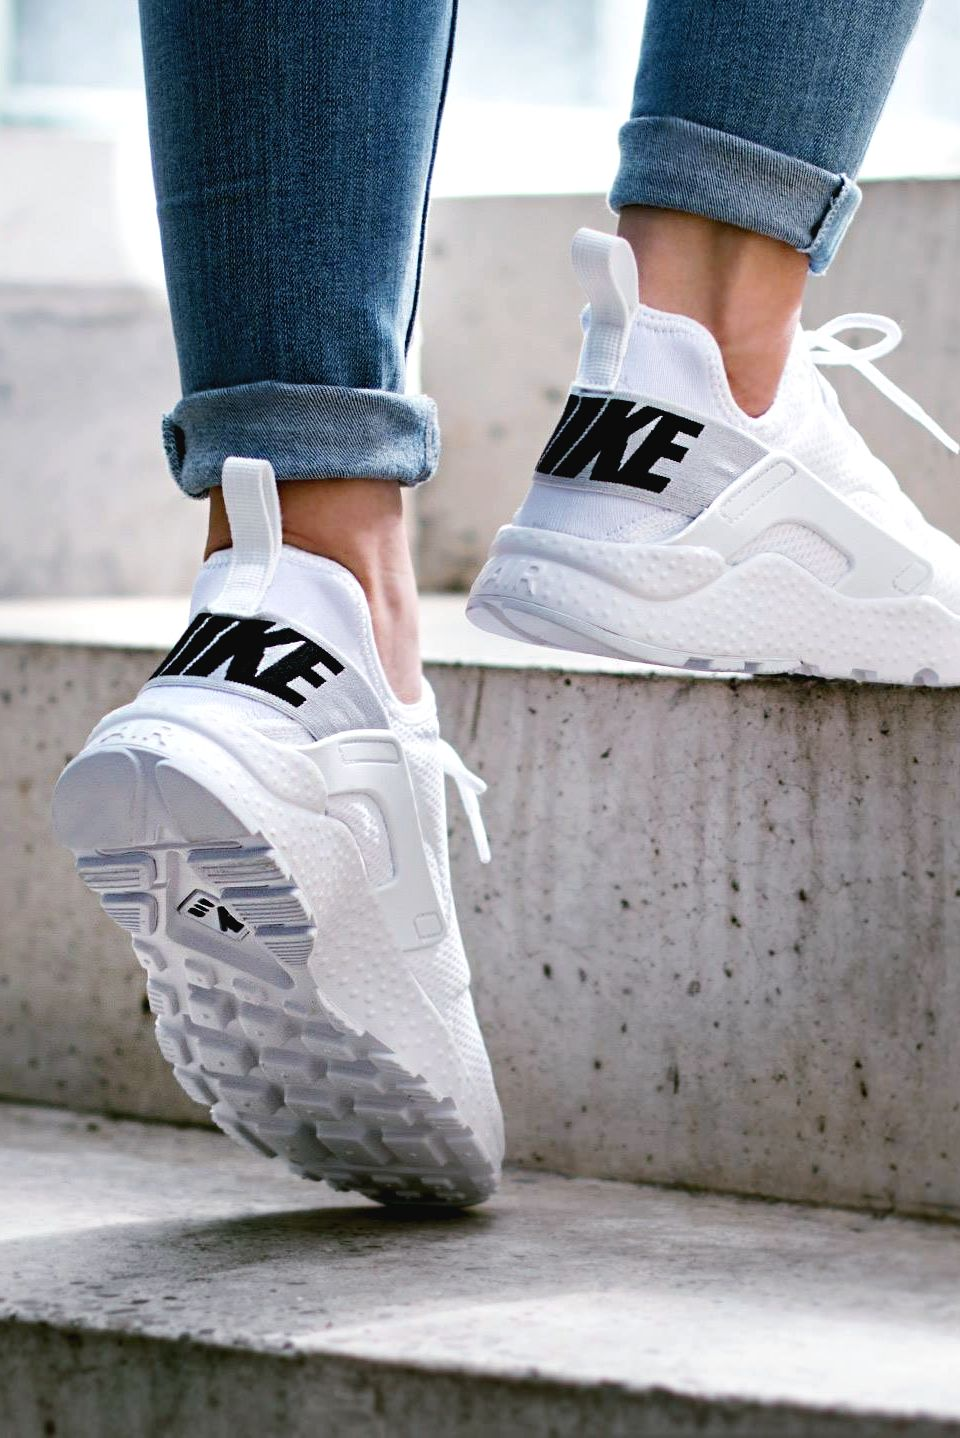 e9263d4443c6e Nike Wmns Air Huarache Run Ultra  White Black  (via Kicks-daily.com)